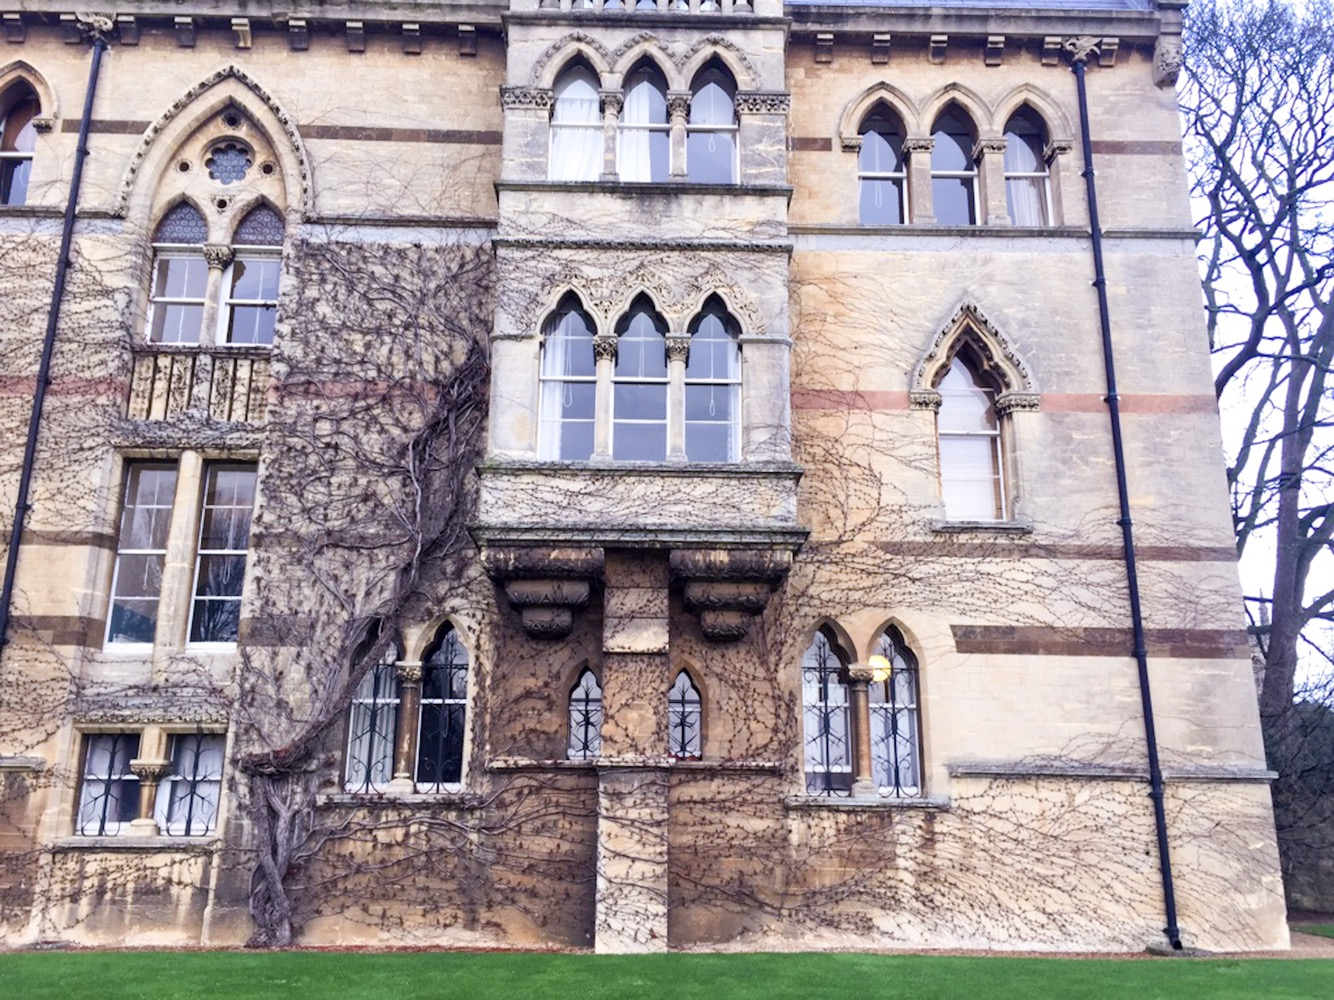 Old college buildings in Oxford